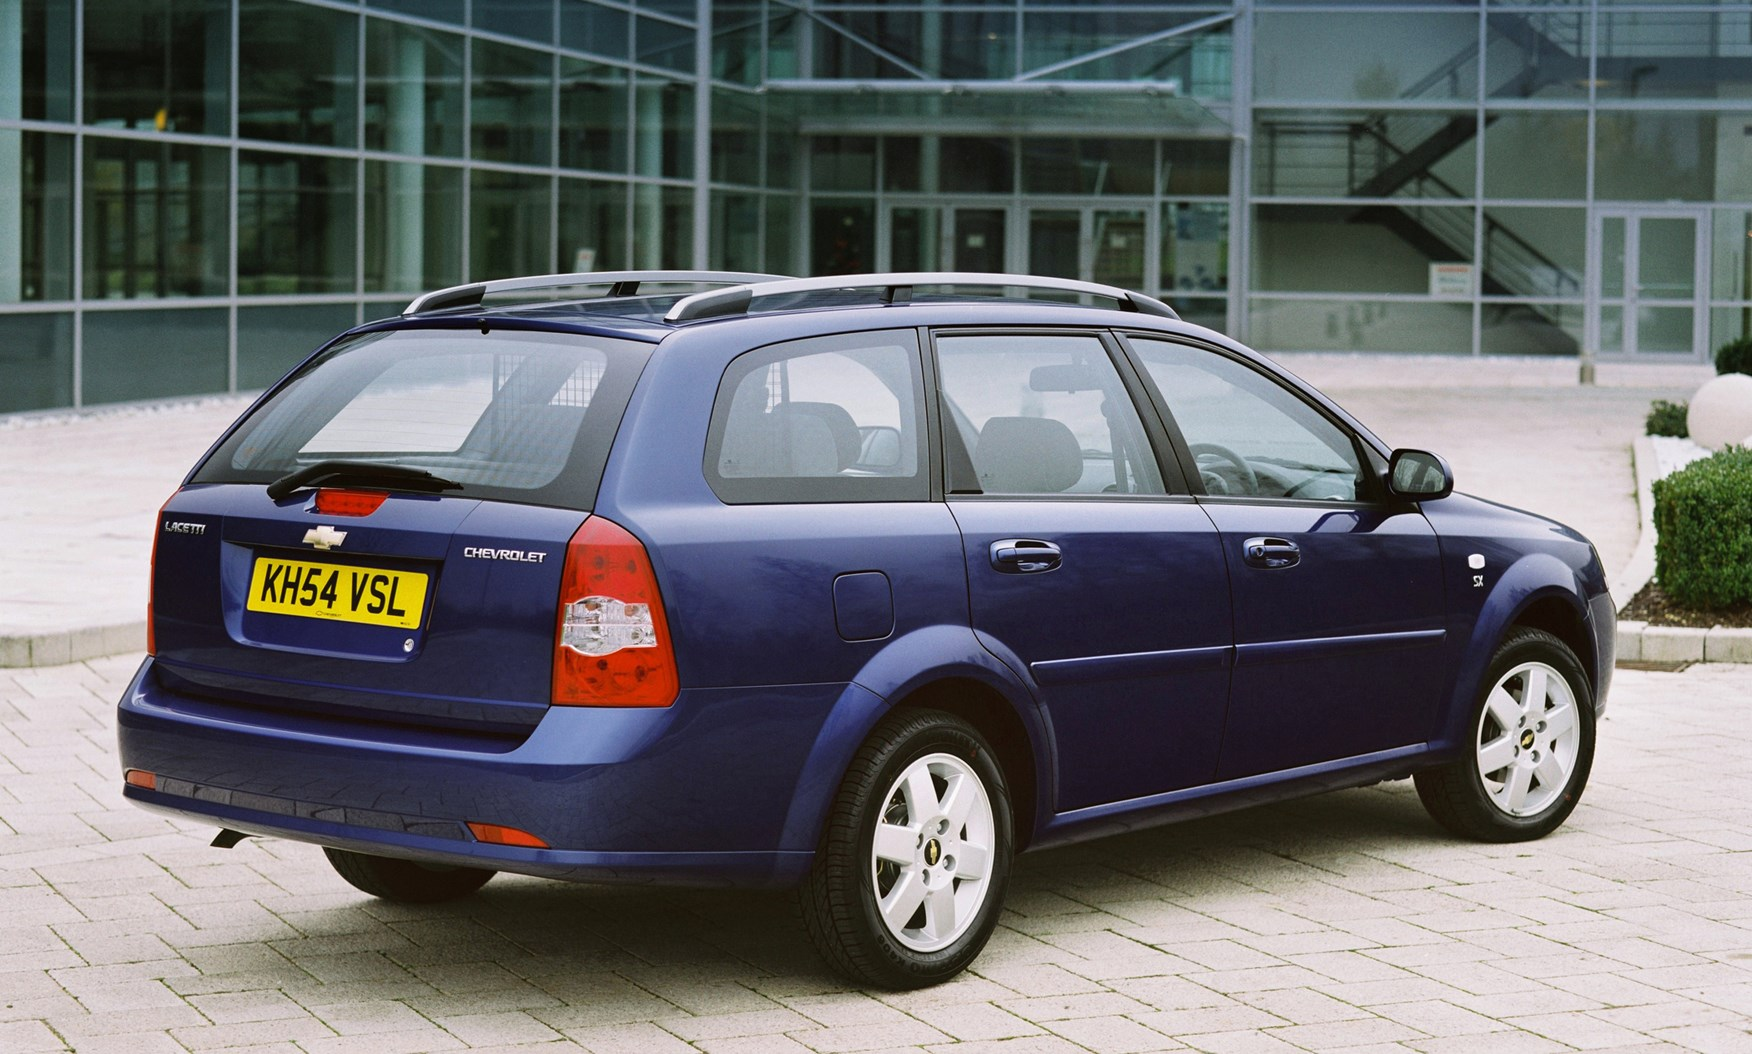 Used Chevrolet Lacetti Station Wagon (2005 - 2011) Review ...